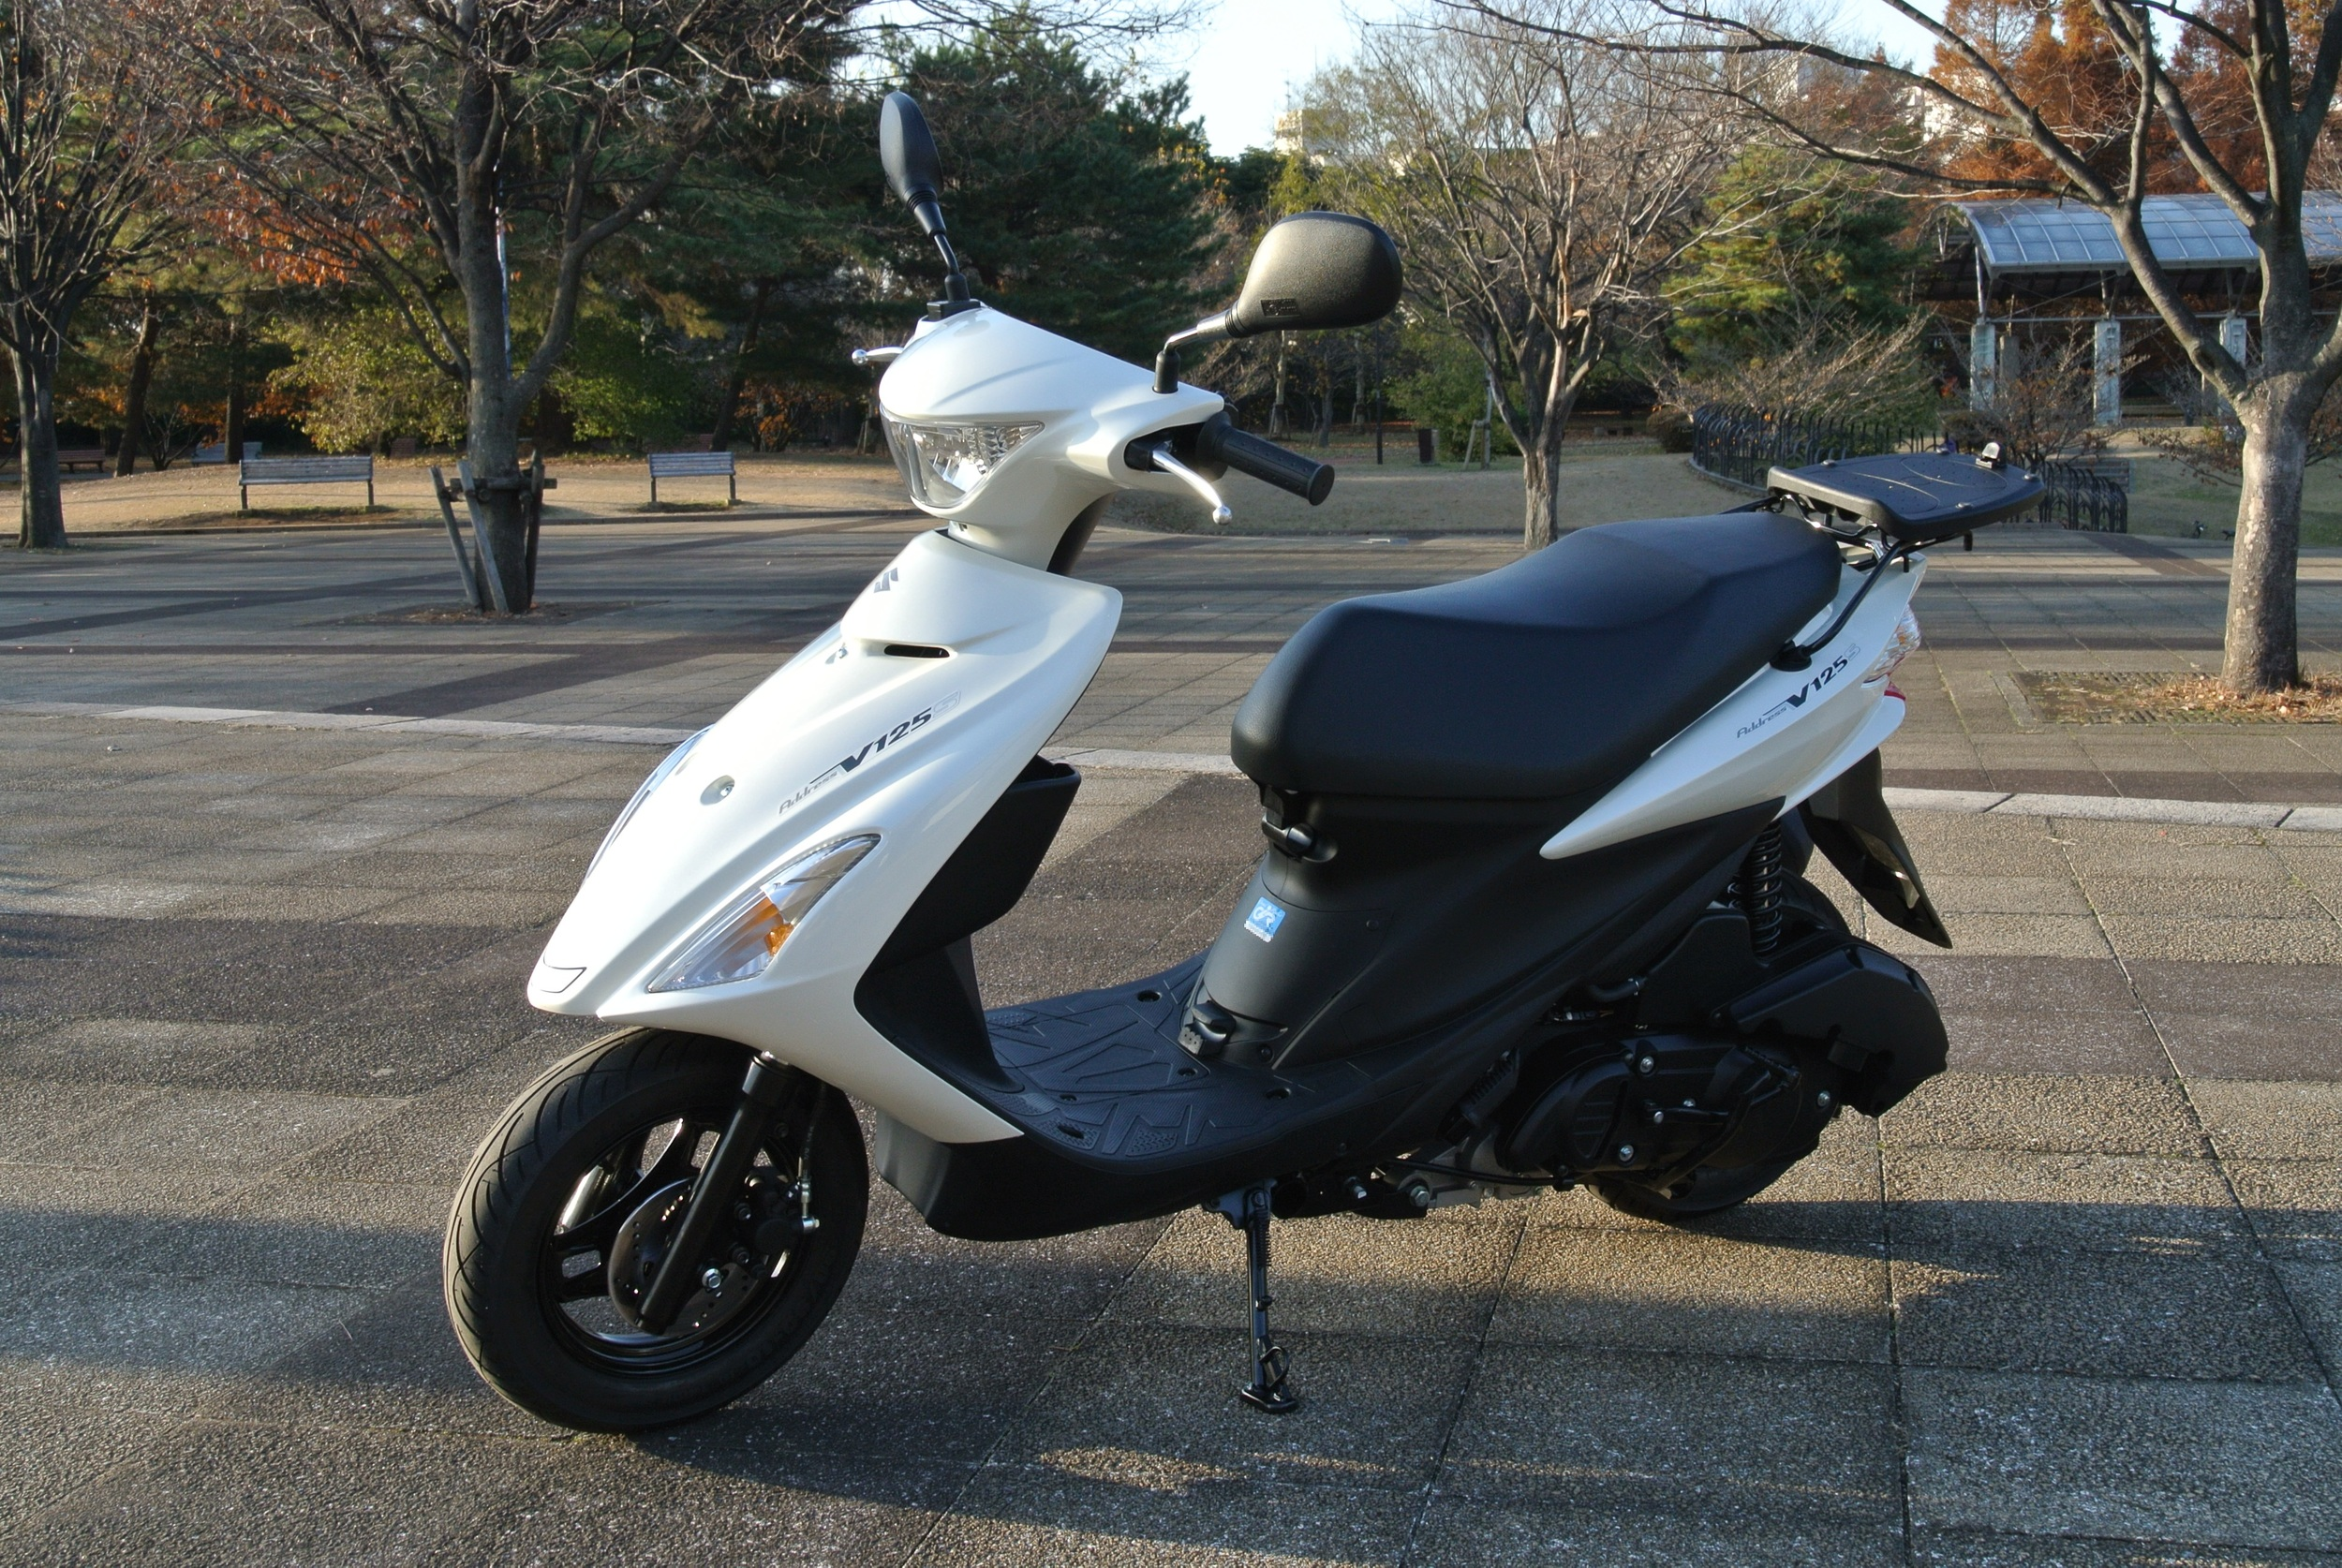 125cc:  A 125cc scooter can accelerate up to 90-100km/hr or higher. This size scooter has no trouble going up hills with more than one person. Even used scooters of this variety are quite durable despite higher mileage. With the higher power capacities comes an equally higher price tag. If your Chinese capabilities are moderate, consider bringing an LET or local friend to help with haggling.